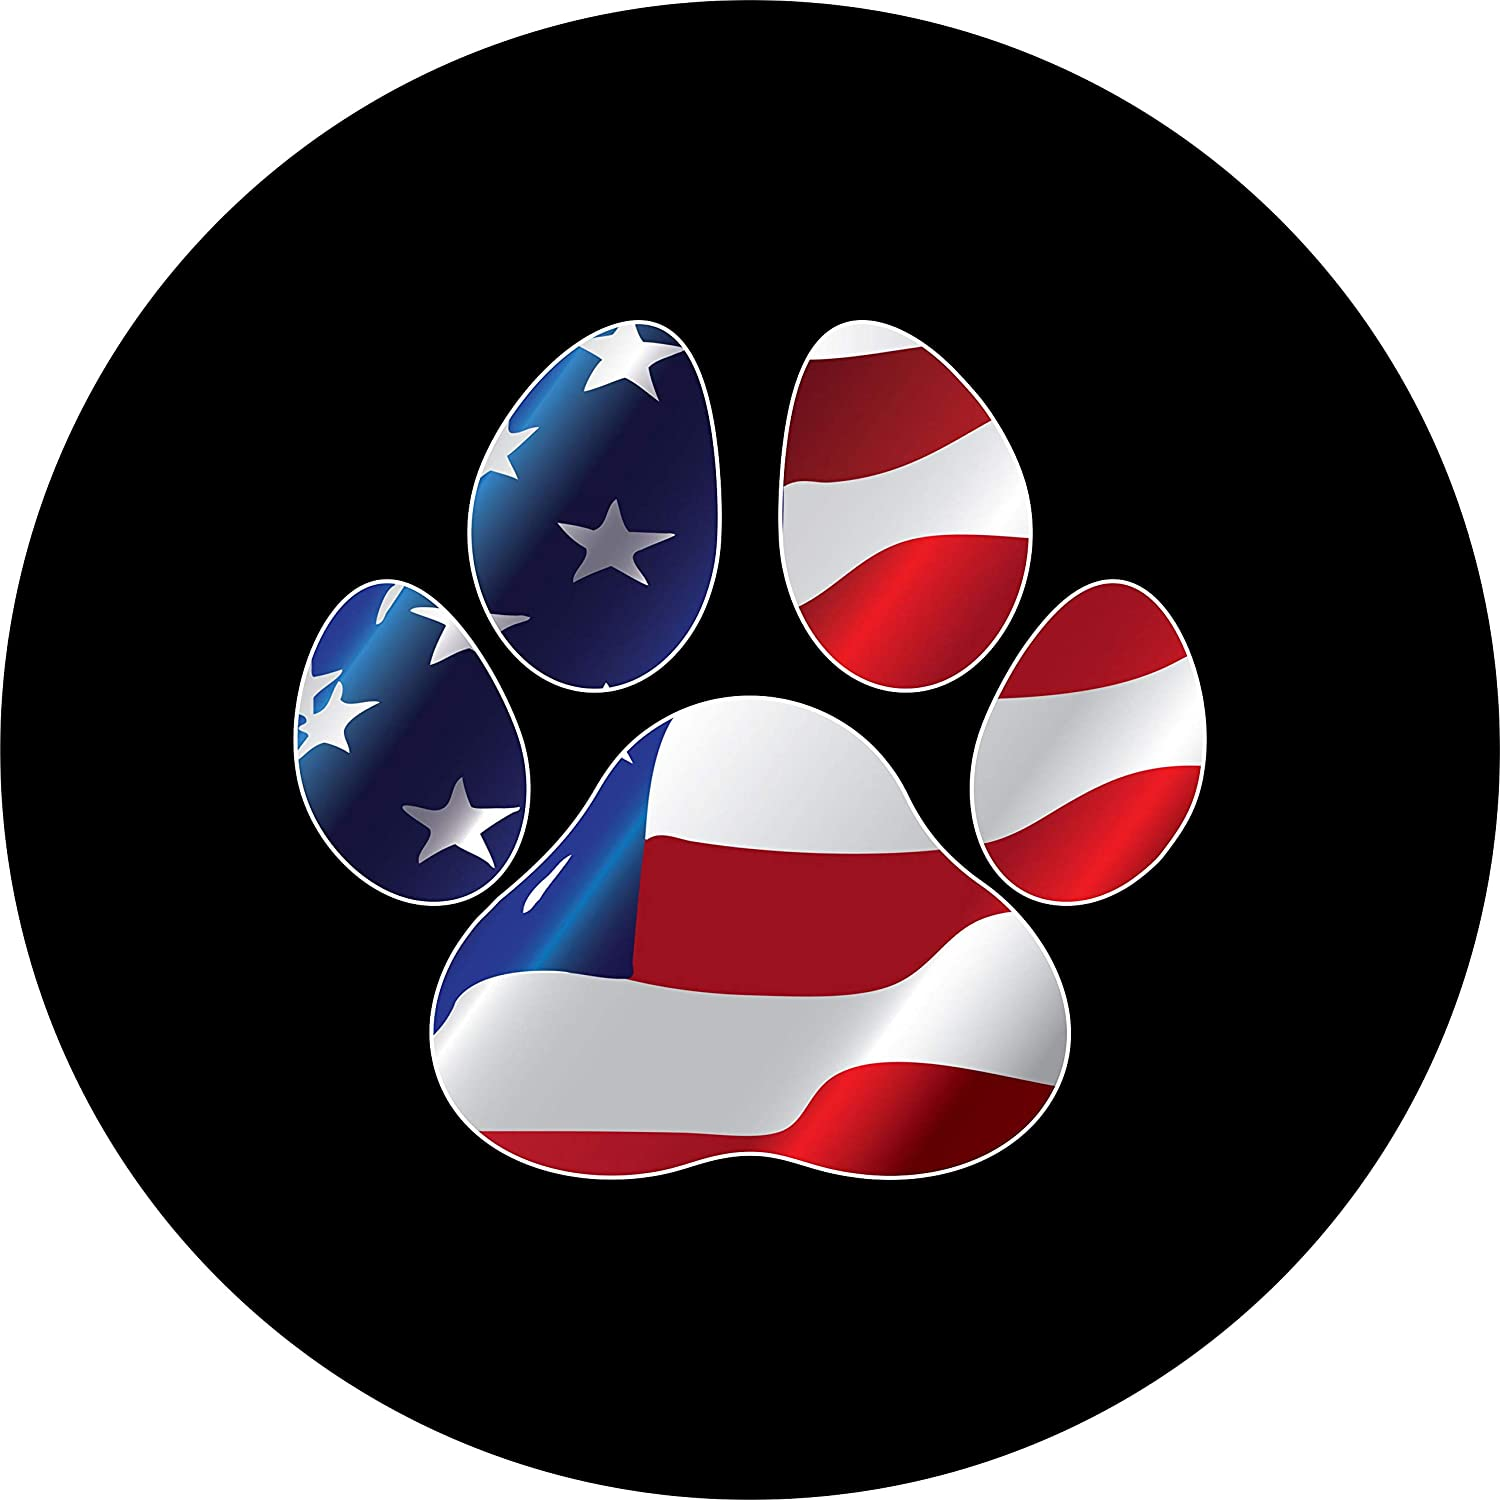 DONL9BAUER Spare Tire Cover Who Rescued Who Universal Leather Spare Wheel Cover Dog Paw Sunproof Tire Covers for Je/_ep Trailer RV SUV Truck Camper Travel and Many Vehicles 14 15 16 17